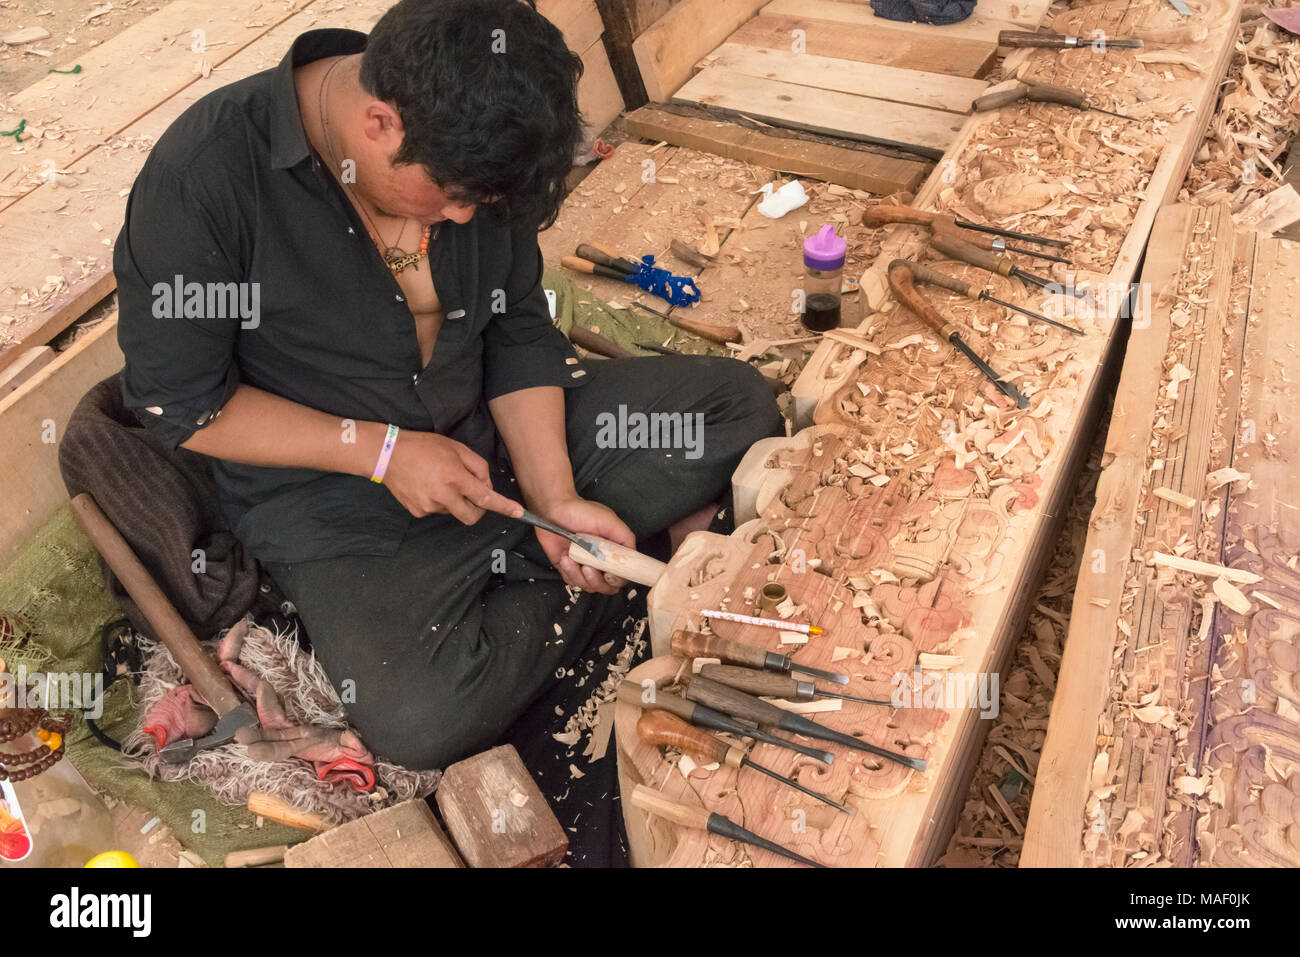 Renovating project at Litang Monastery (Changchunkeersi), carpenter doing wood carving, Litang, western Sichuan, China - Stock Image